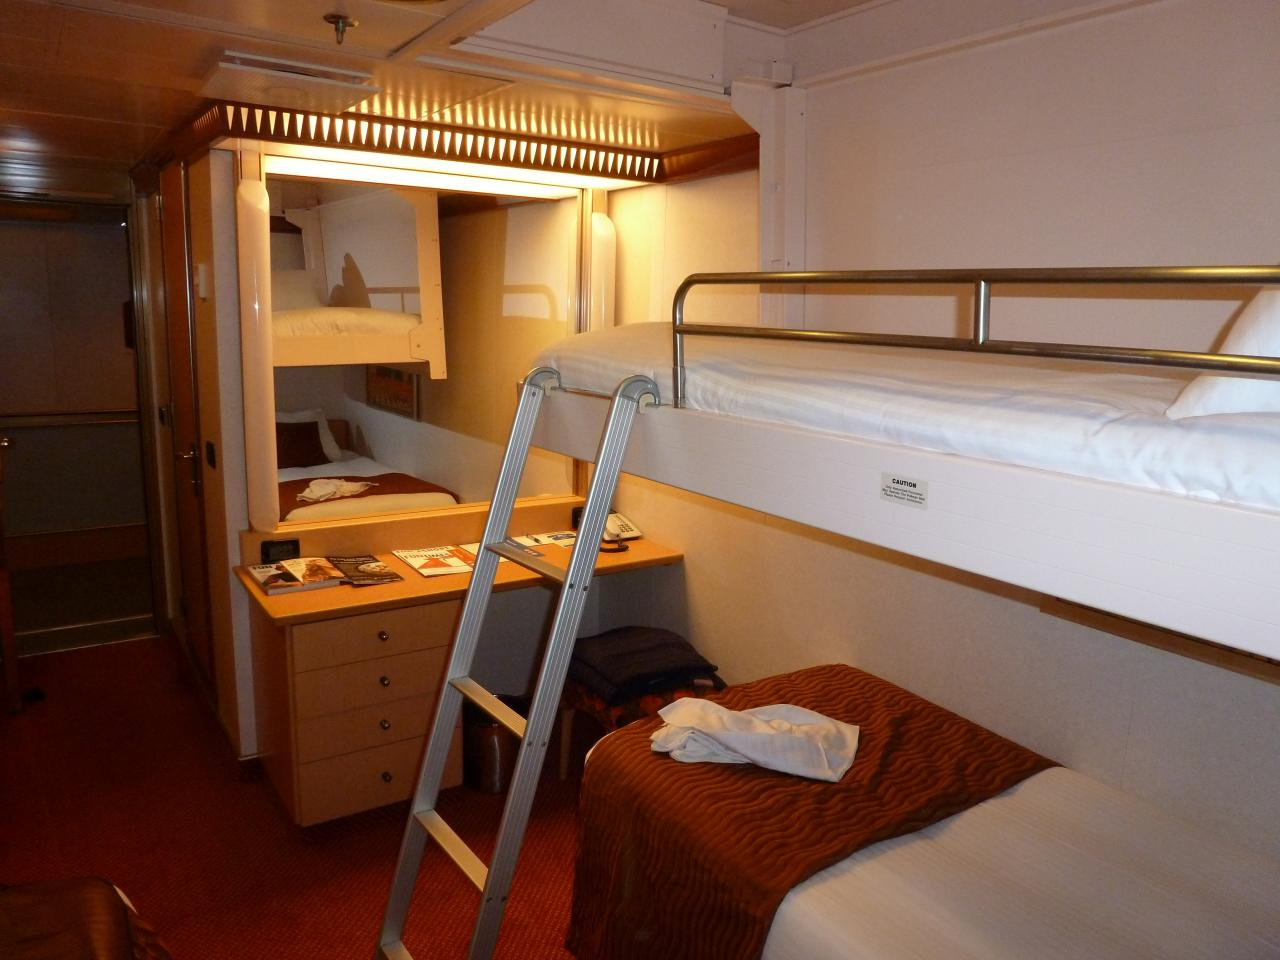 Pullman Bed And Ladder